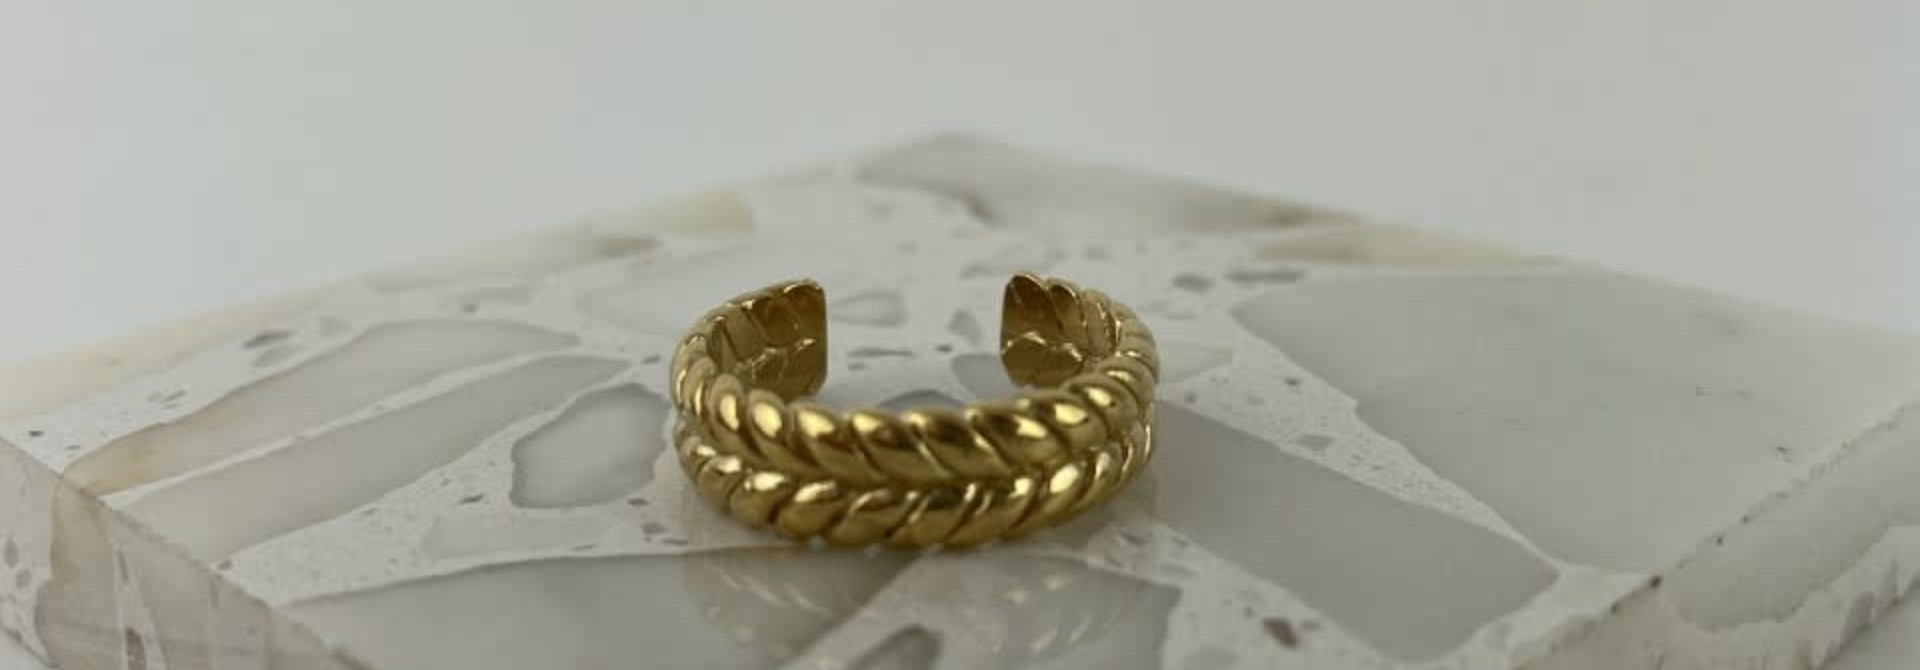 Izelle brained ring gold